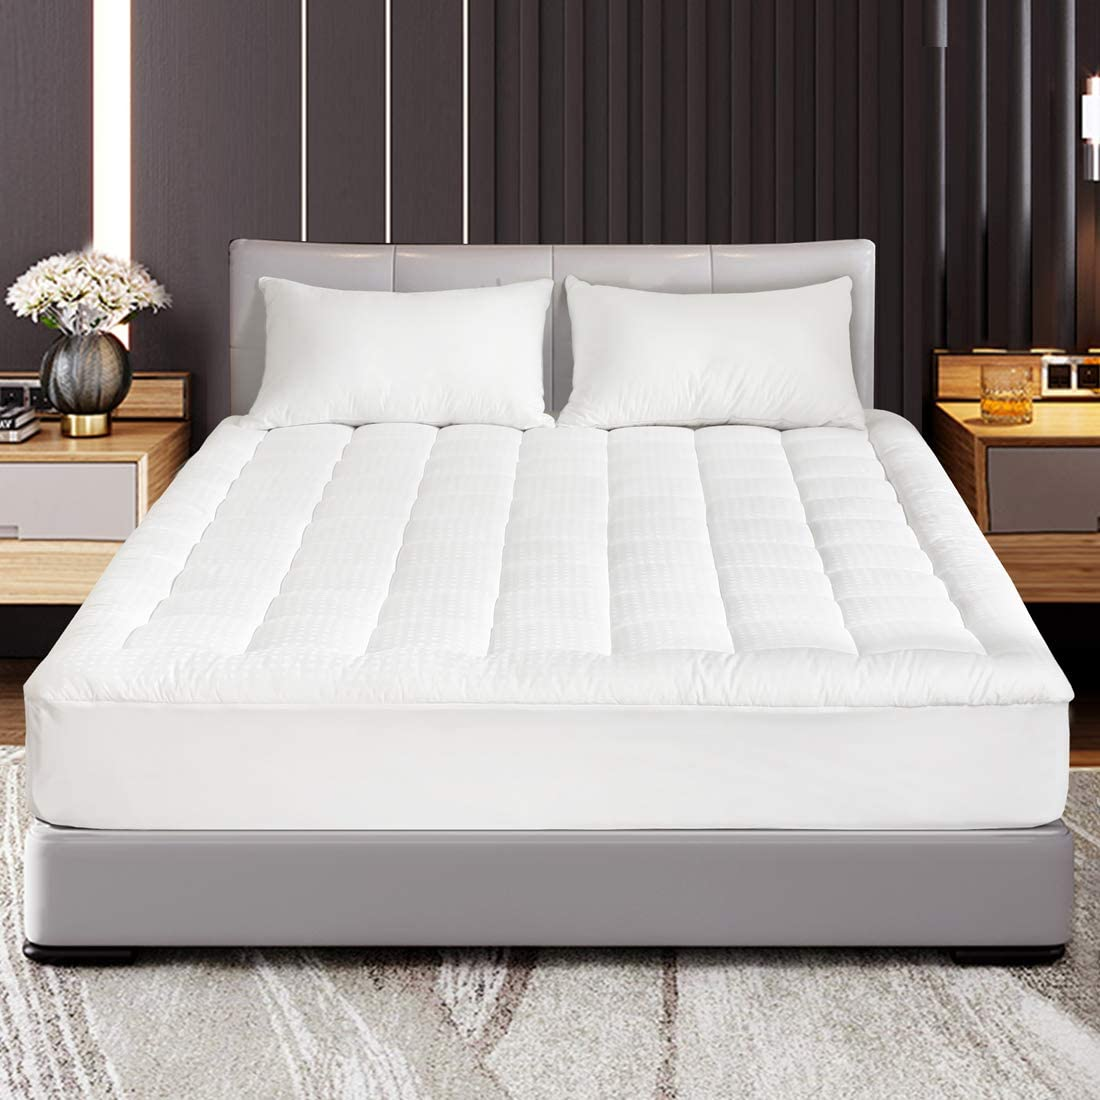 """Abakan Queen Mattress Pad Cover Pillow Top Down Alternative Fill Cotton Top Cooling Breathable Soft Mattress Topper Fitted 8""""-21"""" Deep Pocket"""